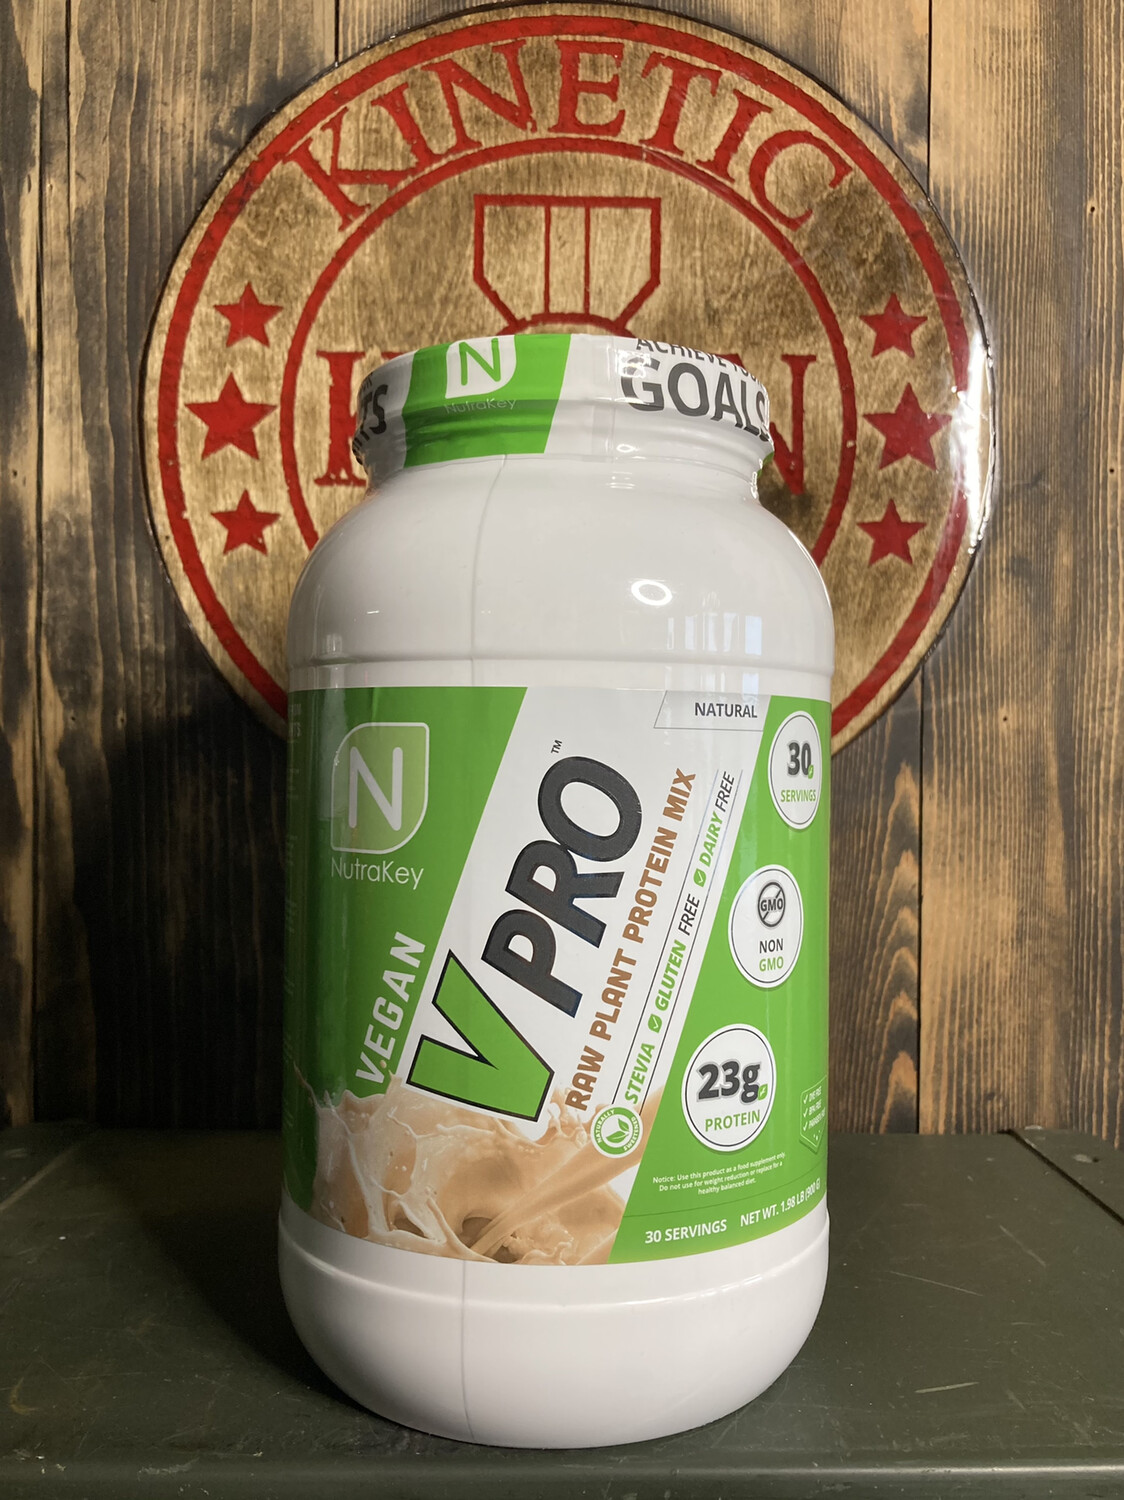 Nutrakey, Vpro Raw Plant Protein, 30 Servings, 2lb, Natural